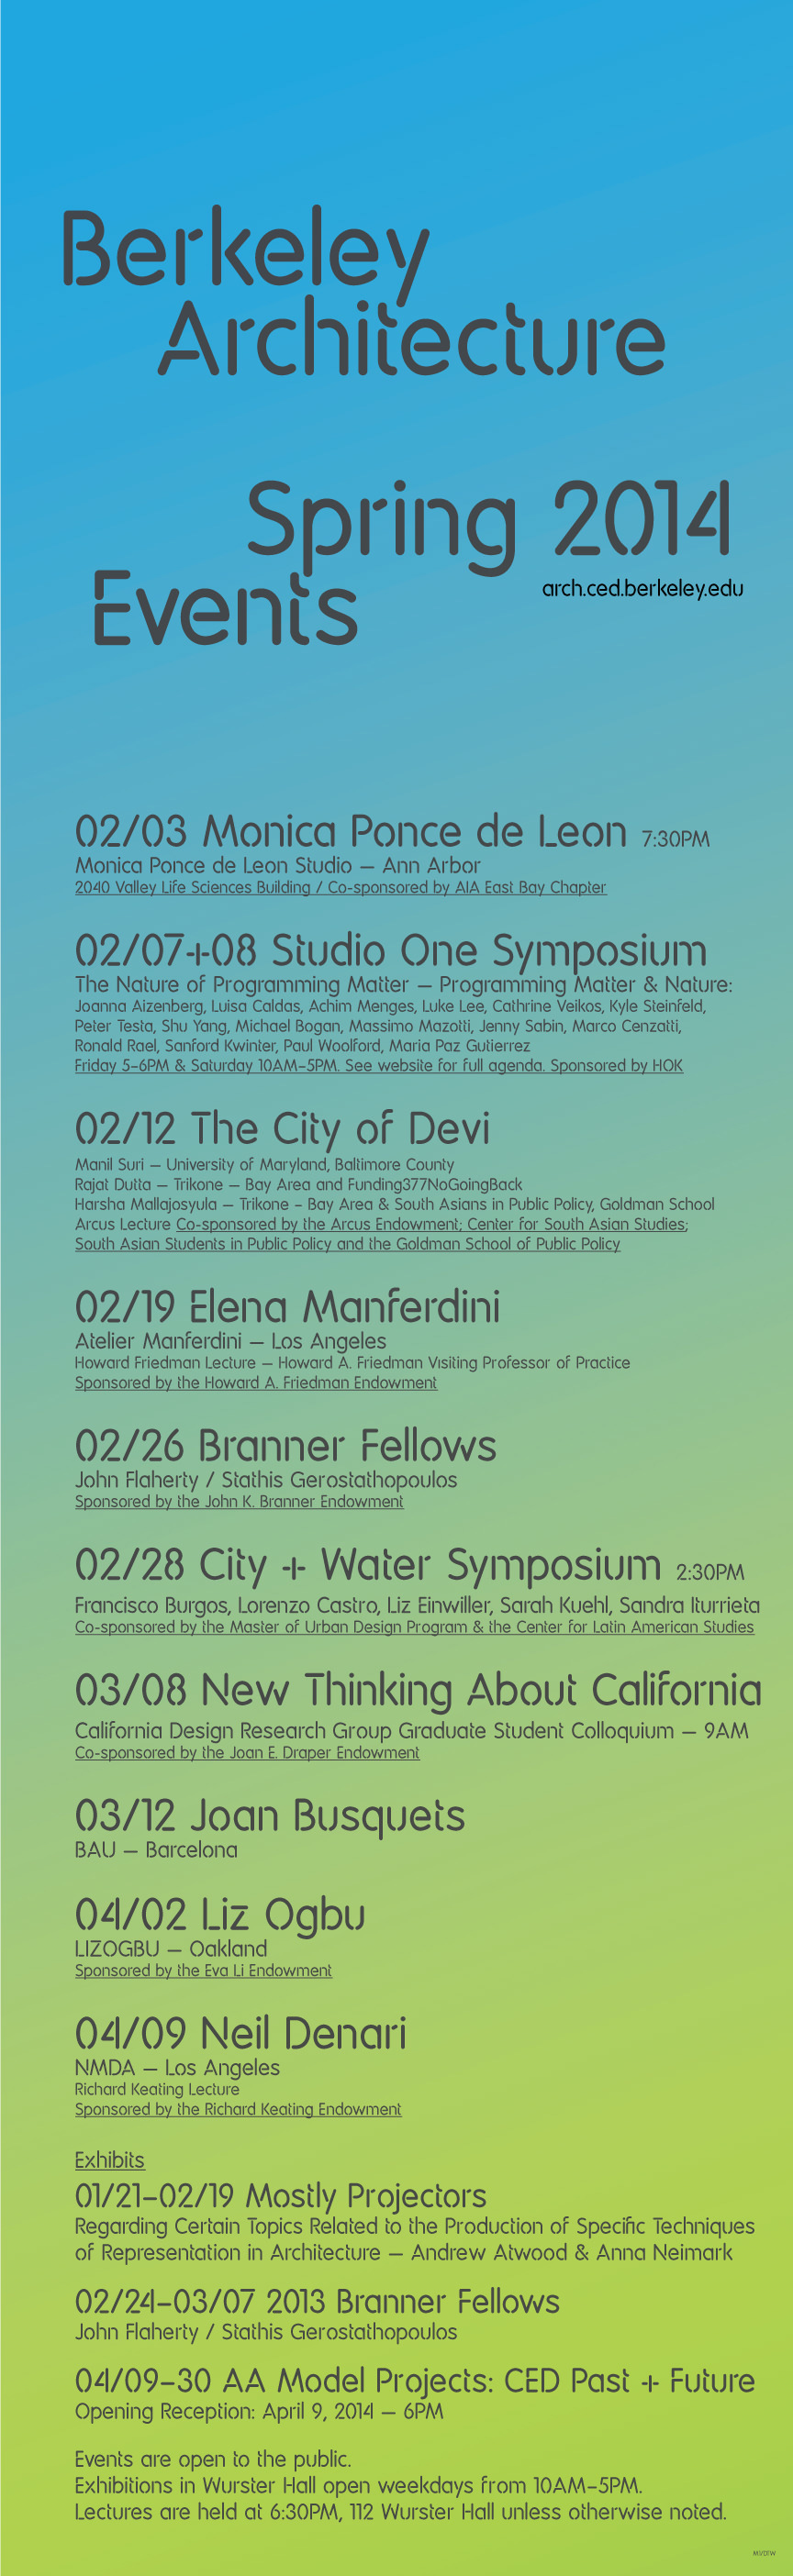 UC Berkeley College of Environmental Design, Spring 14 Lecture Events. Image courtesy of UC Berkeley CED.